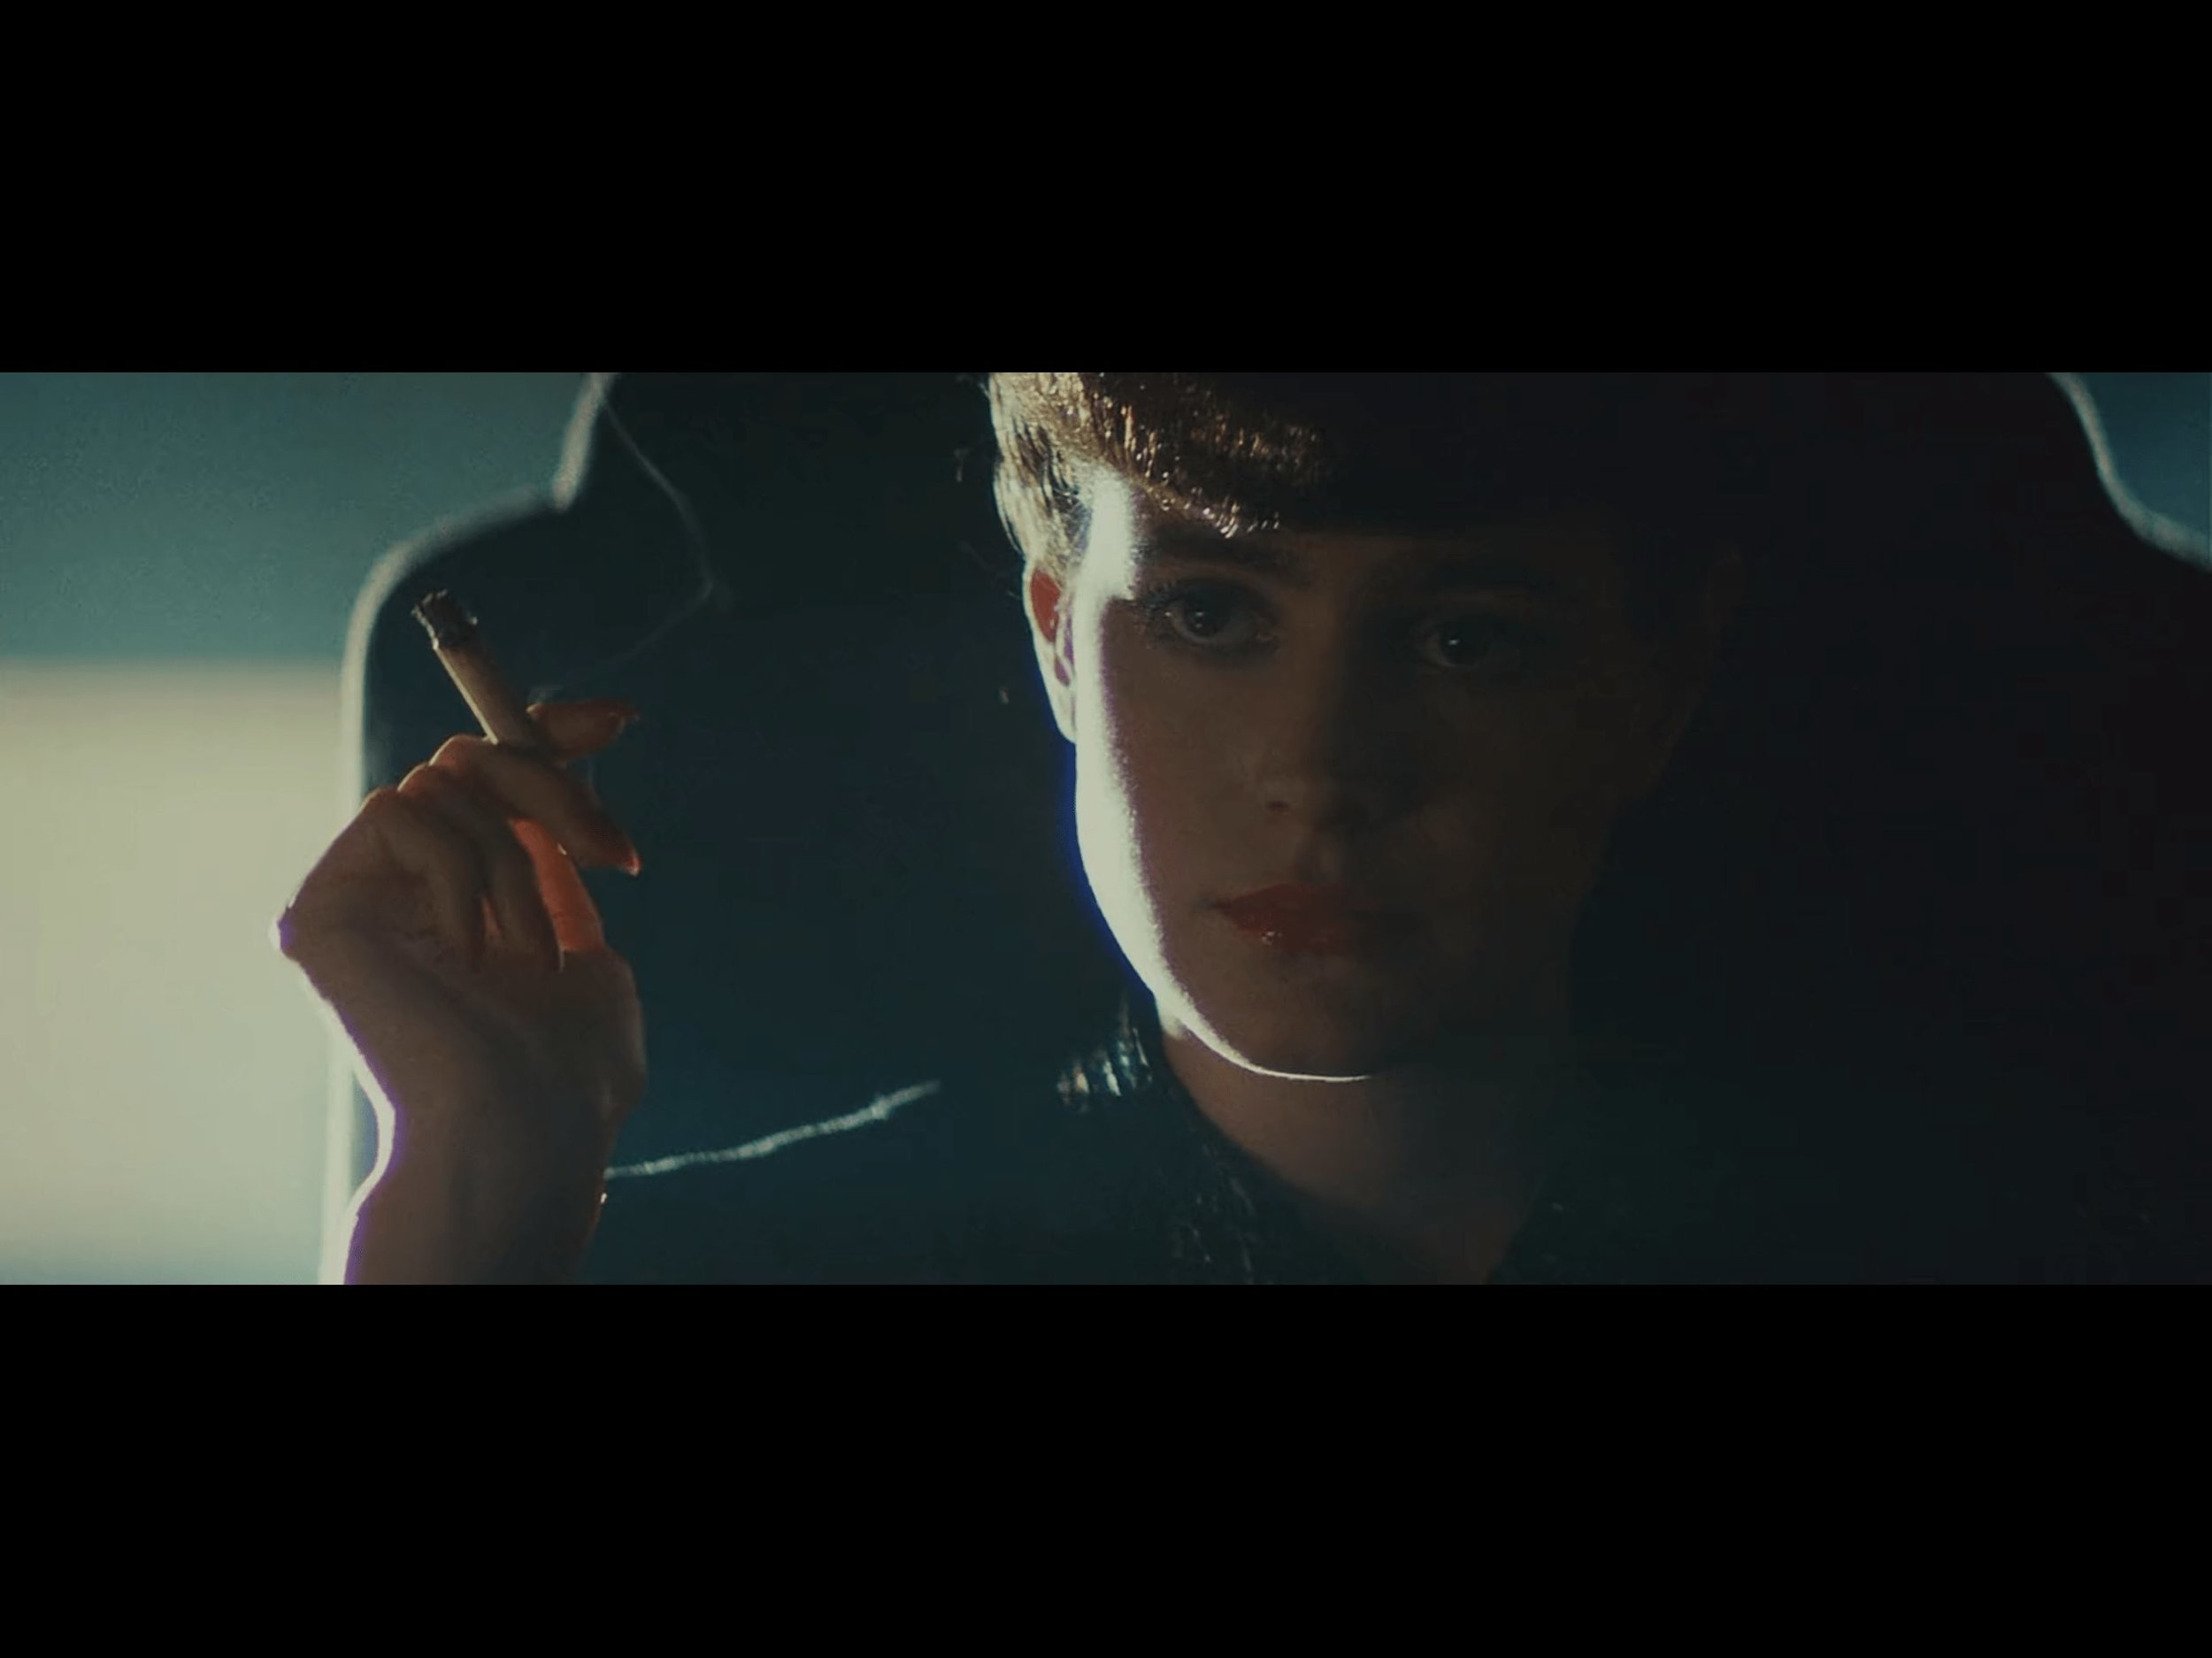 blade-runner-movie-1982-screenshot-16-min.jpg